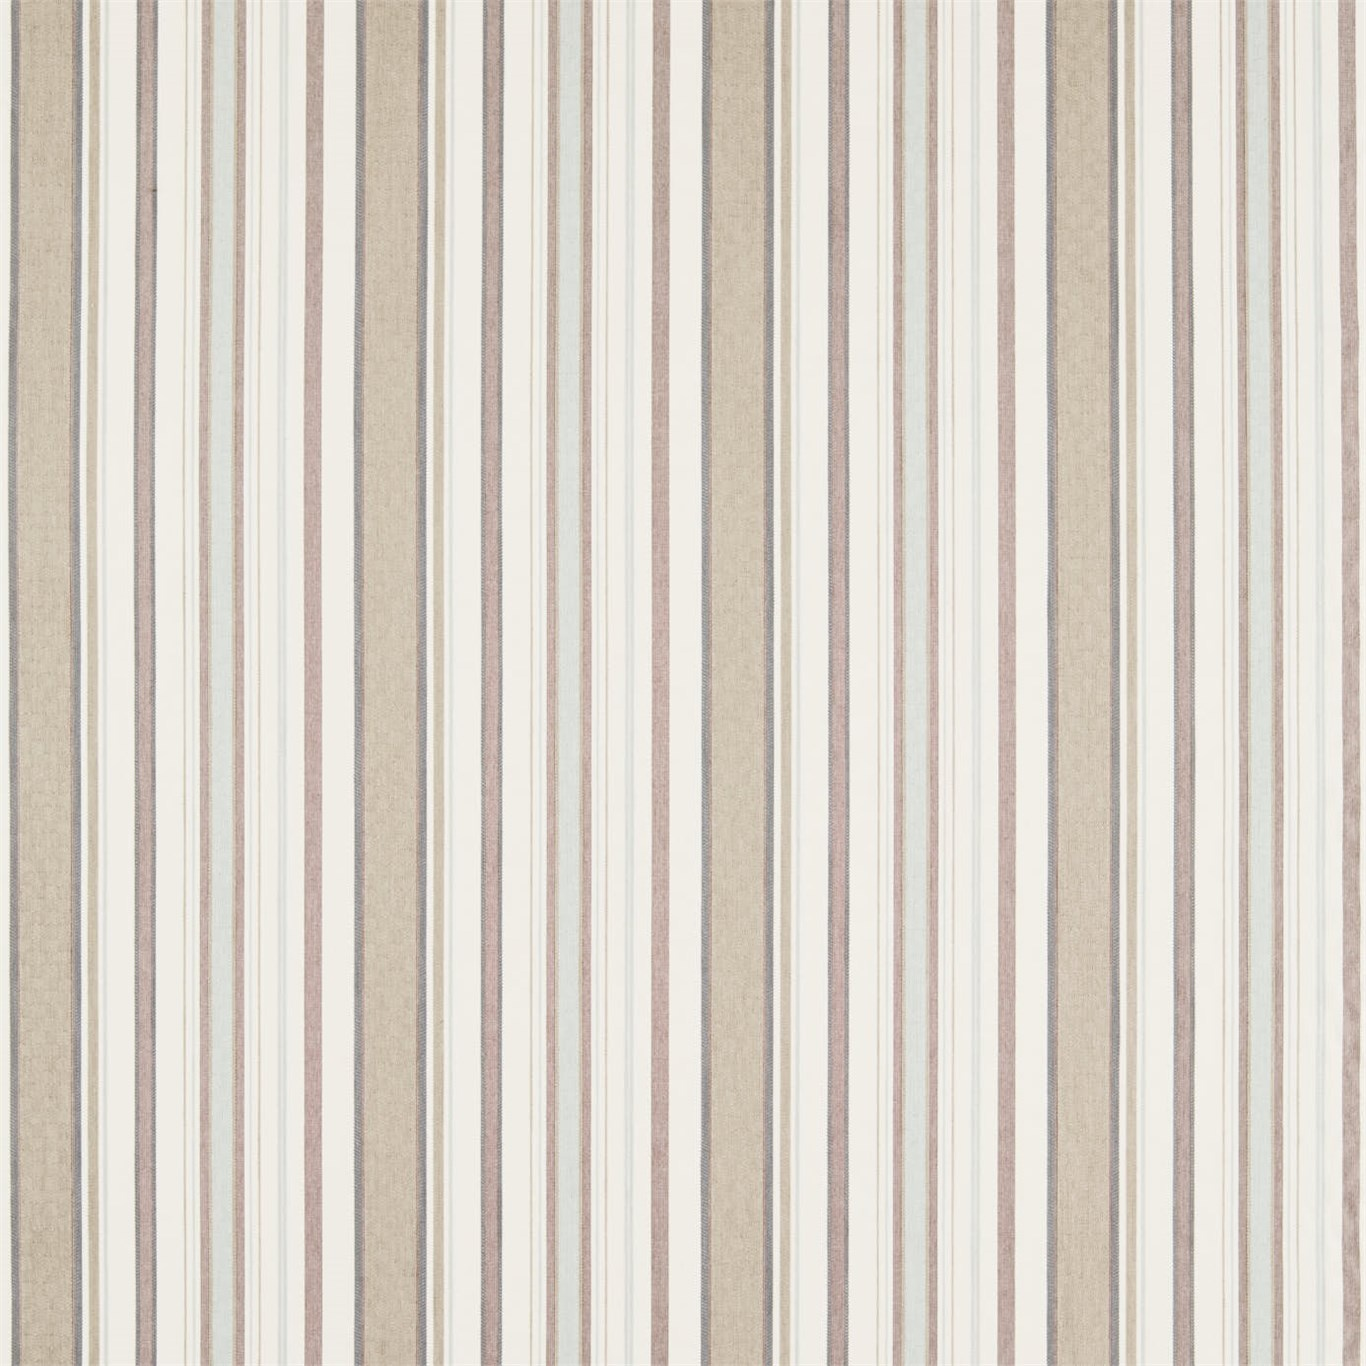 Image of Sanderson Home Dobby Stripe Mineral Curtain Fabric 235894